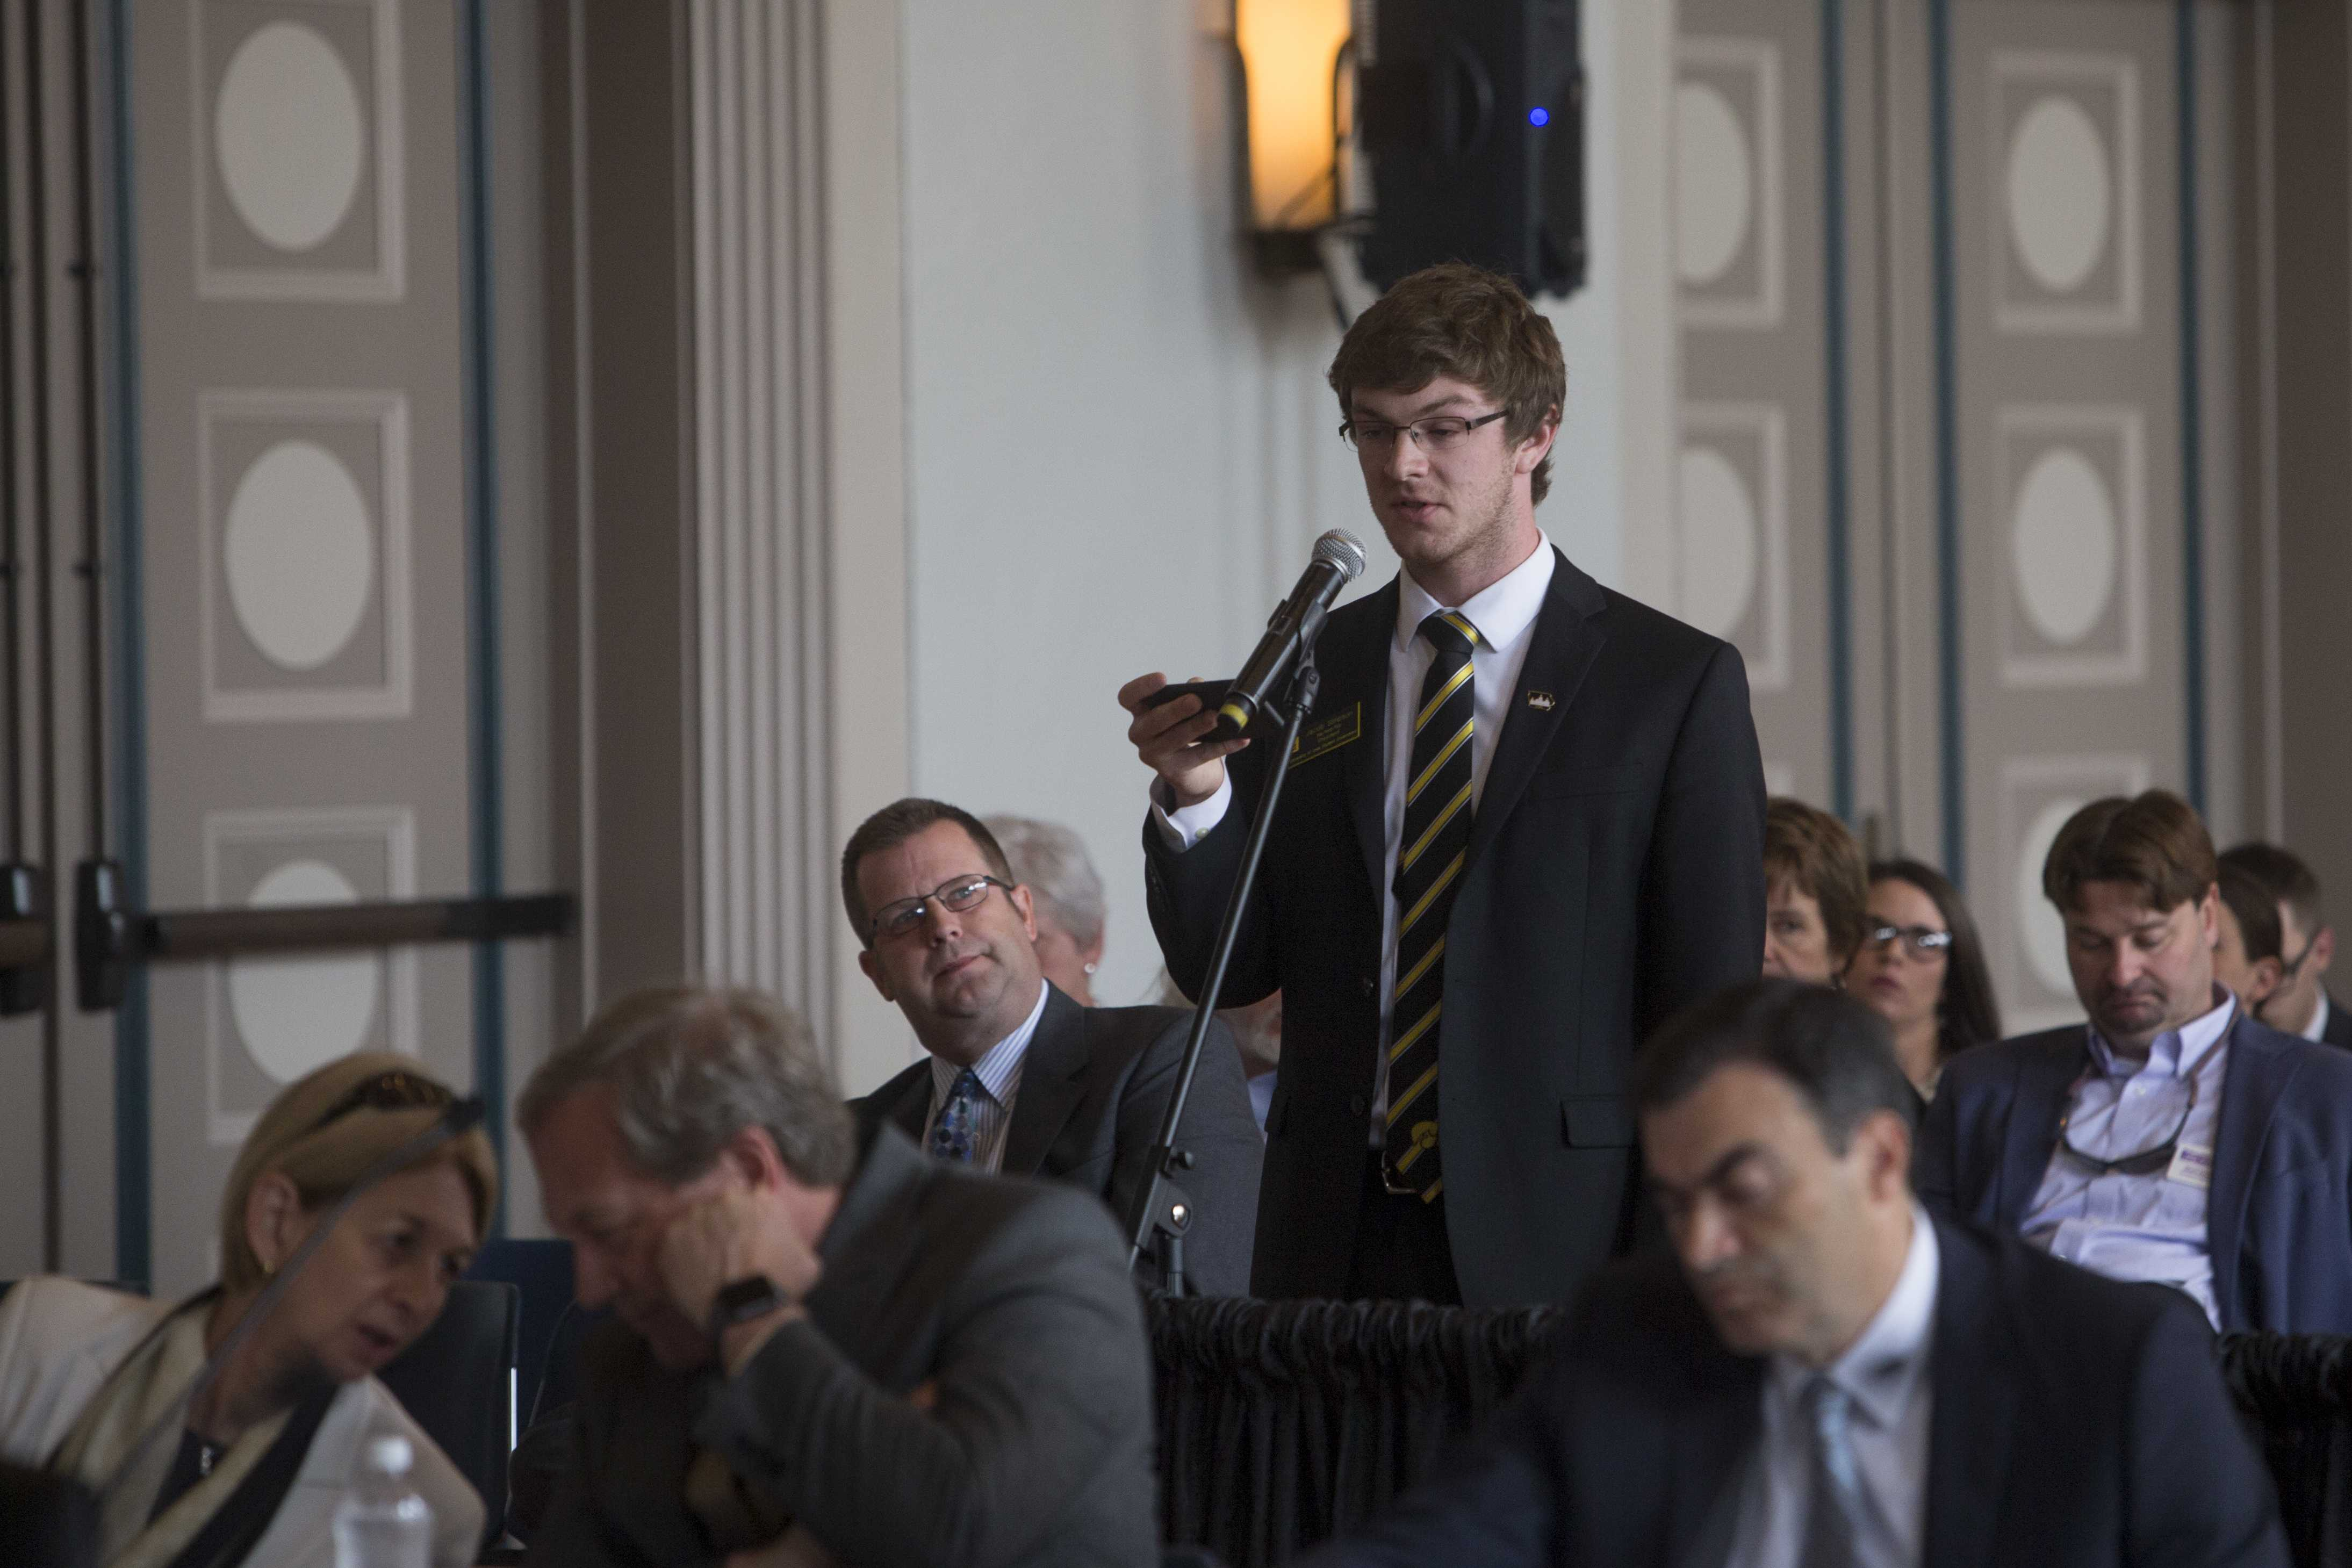 UISG president Jacob Simpson addresses the Iowa Board of Regents on Thursday June 8, 2017. Simpson called for transparency as the Board of Regents debates tuituion increases. (The Daily Iowan/Nick Rohlman)